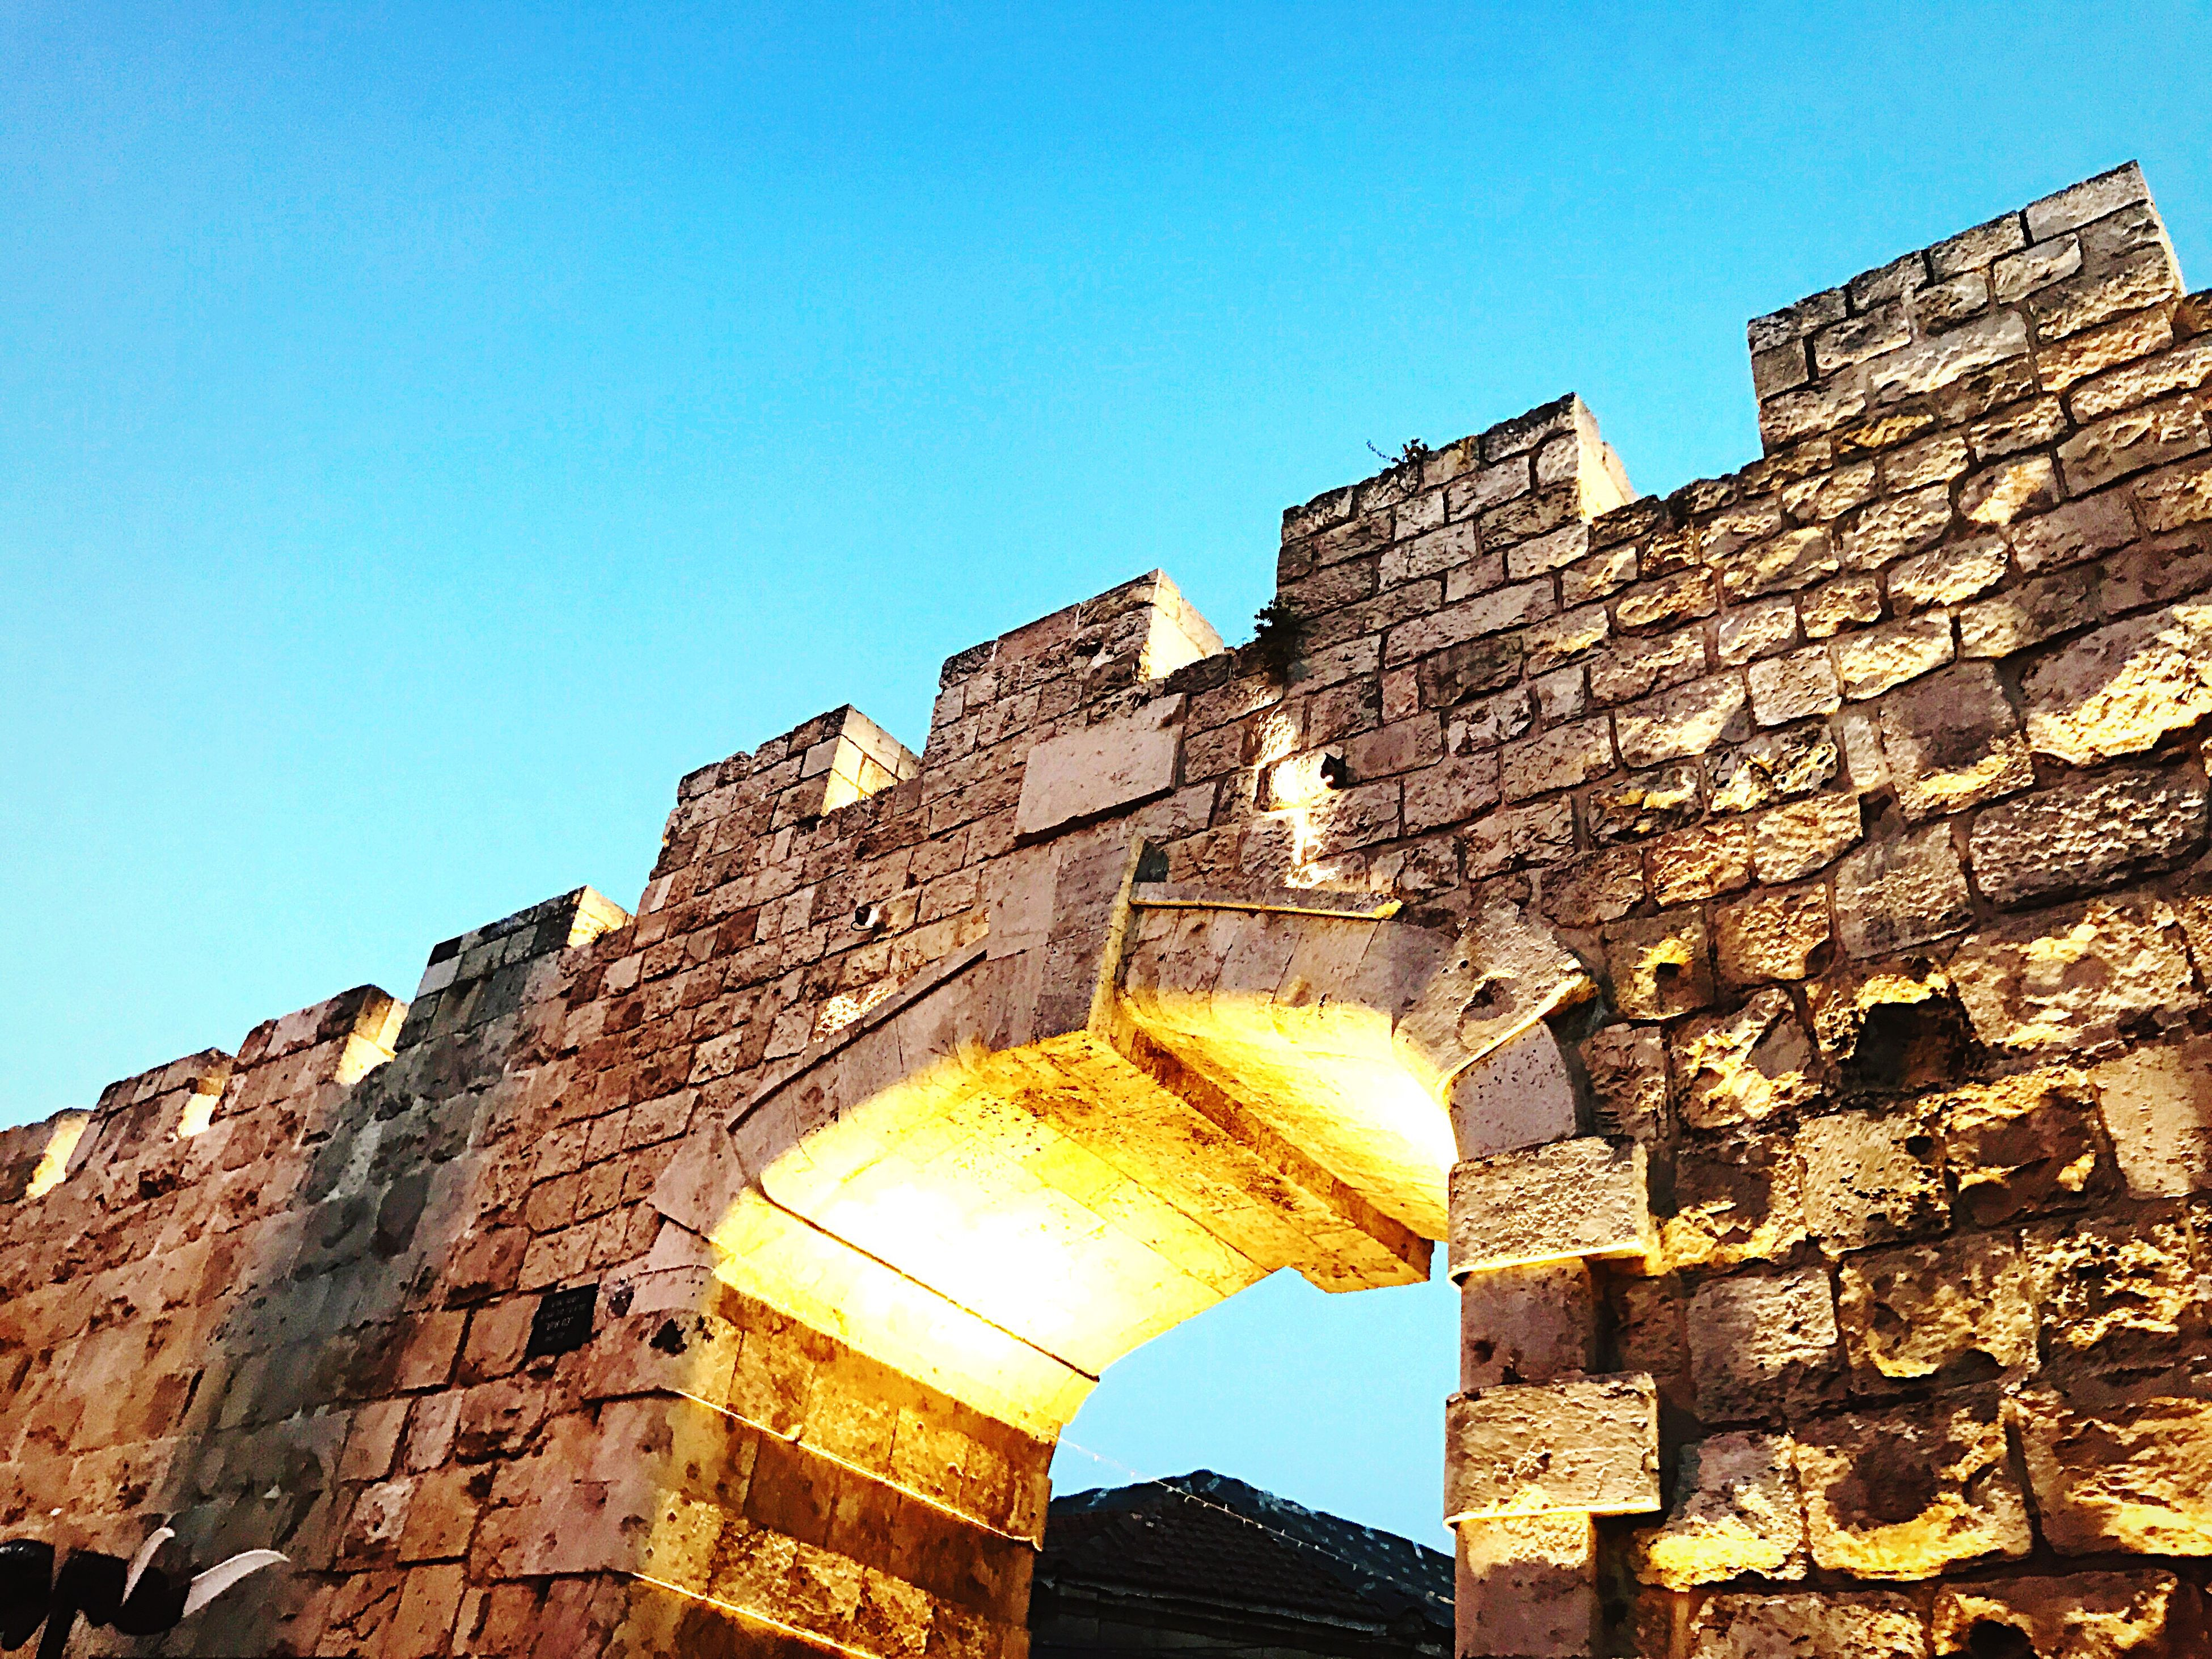 architecture, built structure, history, old ruin, building exterior, low angle view, old, ancient, clear sky, archaeology, sunlight, ancient civilization, the past, brick wall, day, no people, travel destinations, outdoors, blue, sky, city